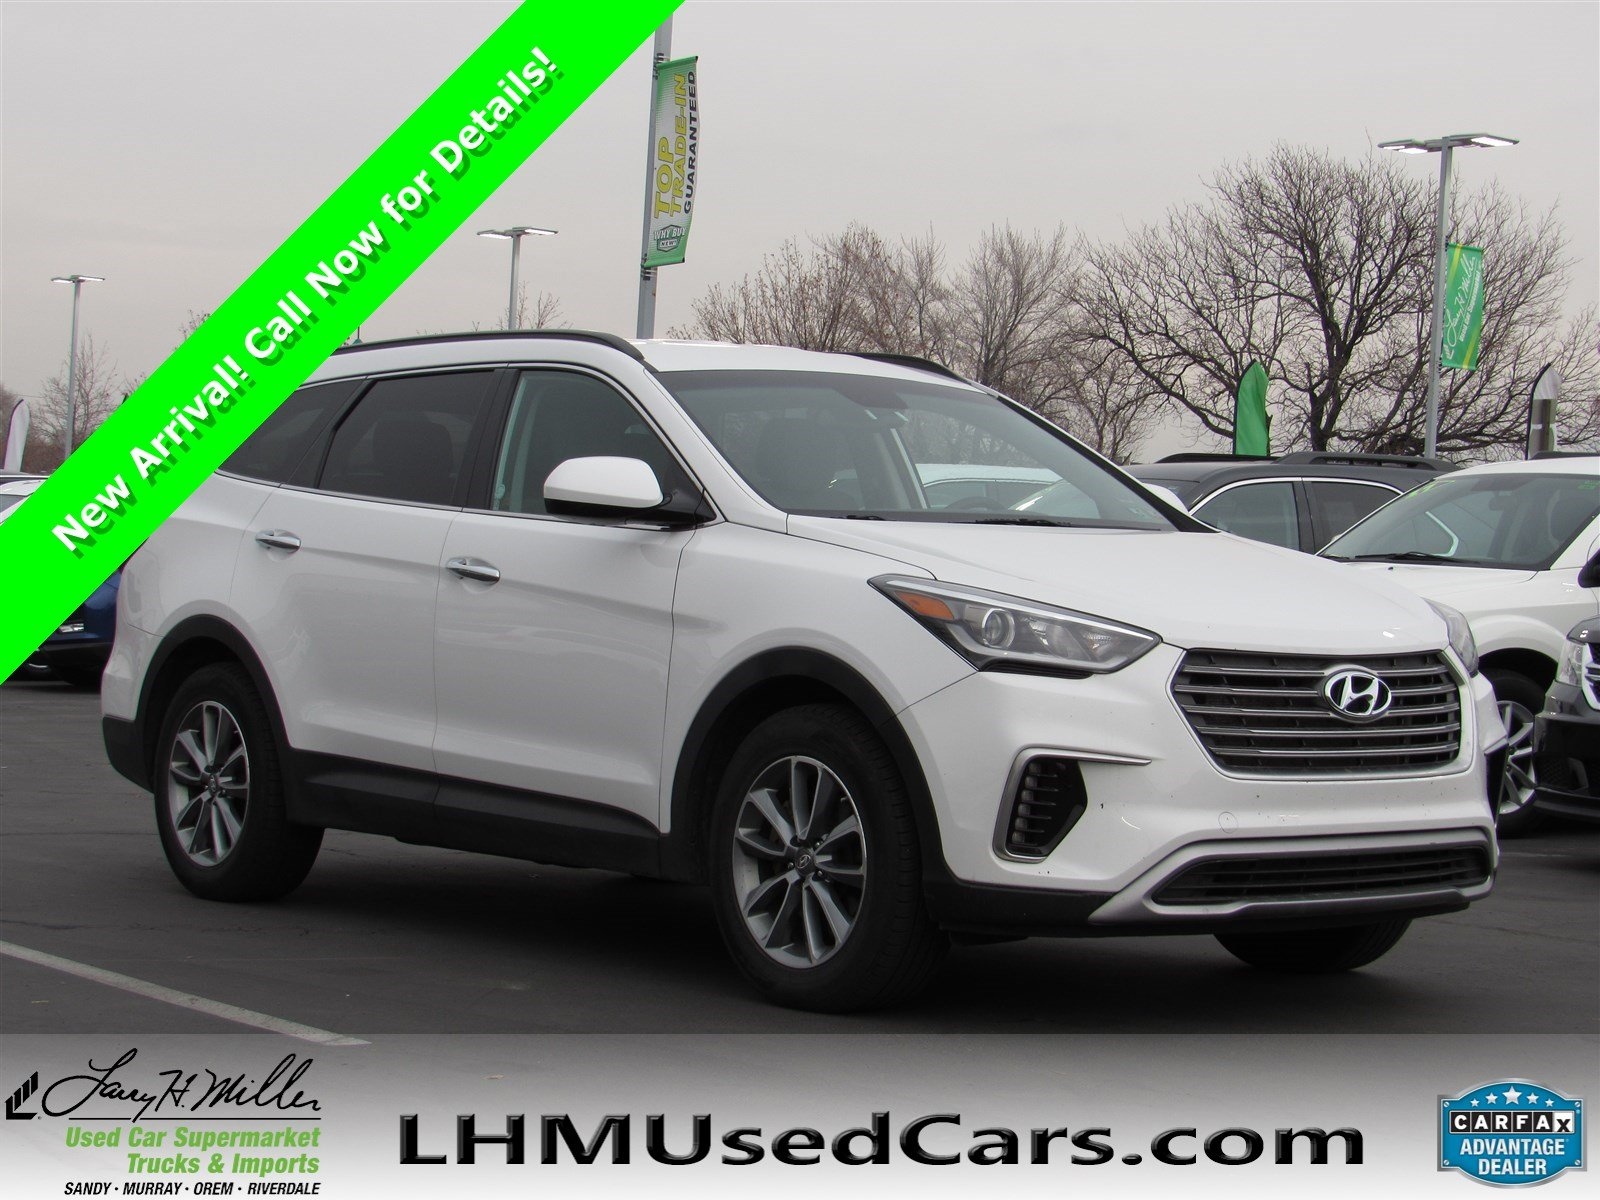 Carfax Used Cars Utah Unique Used Hyundai for Sale In Bountiful Ut Automall